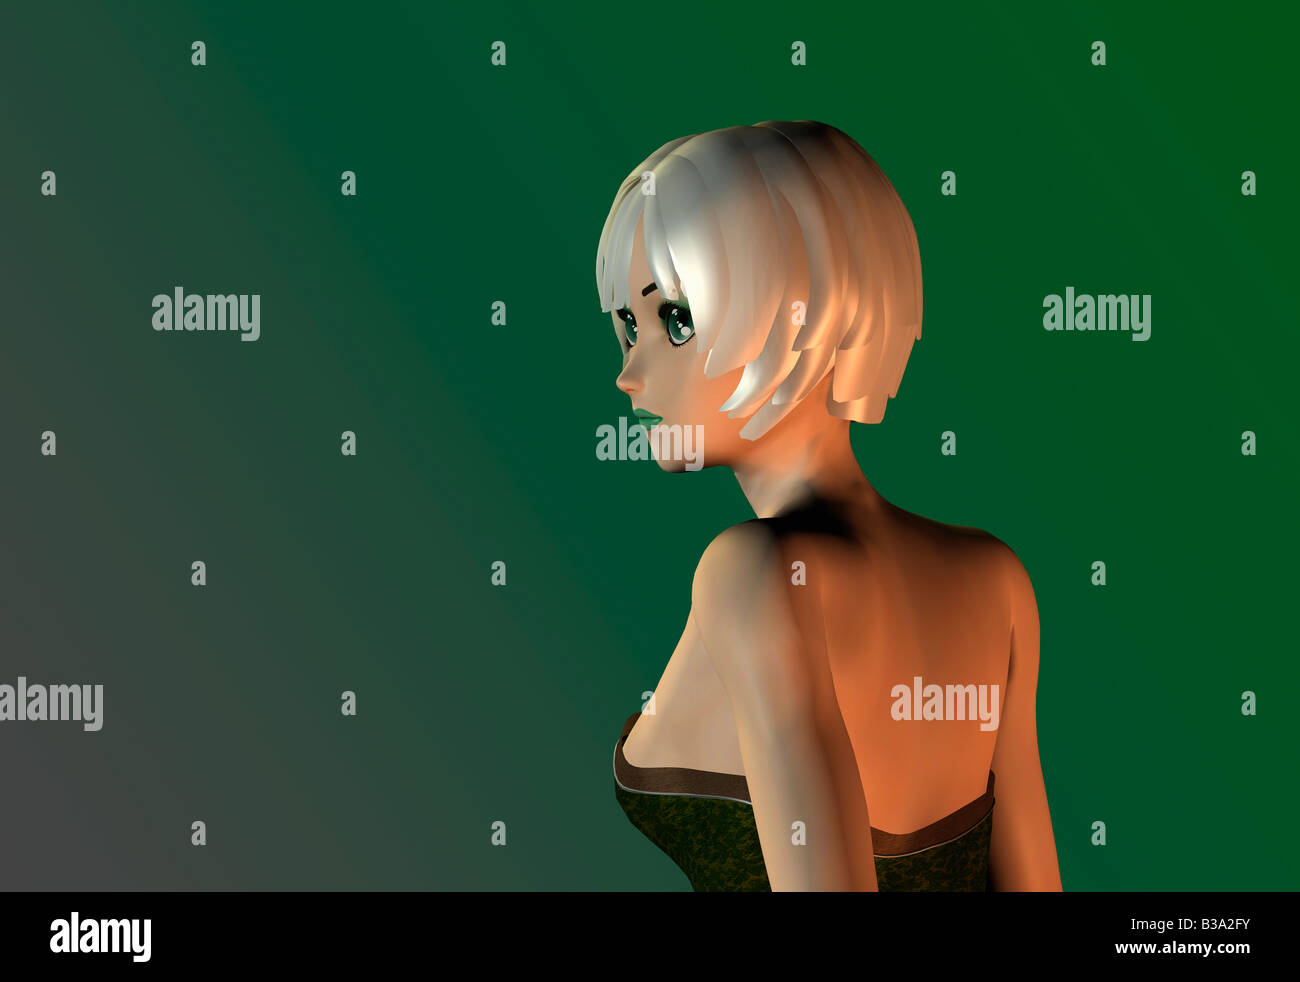 Computer Illustration Of Young Woman Looking Over Her Left Shoulder - Stock Image